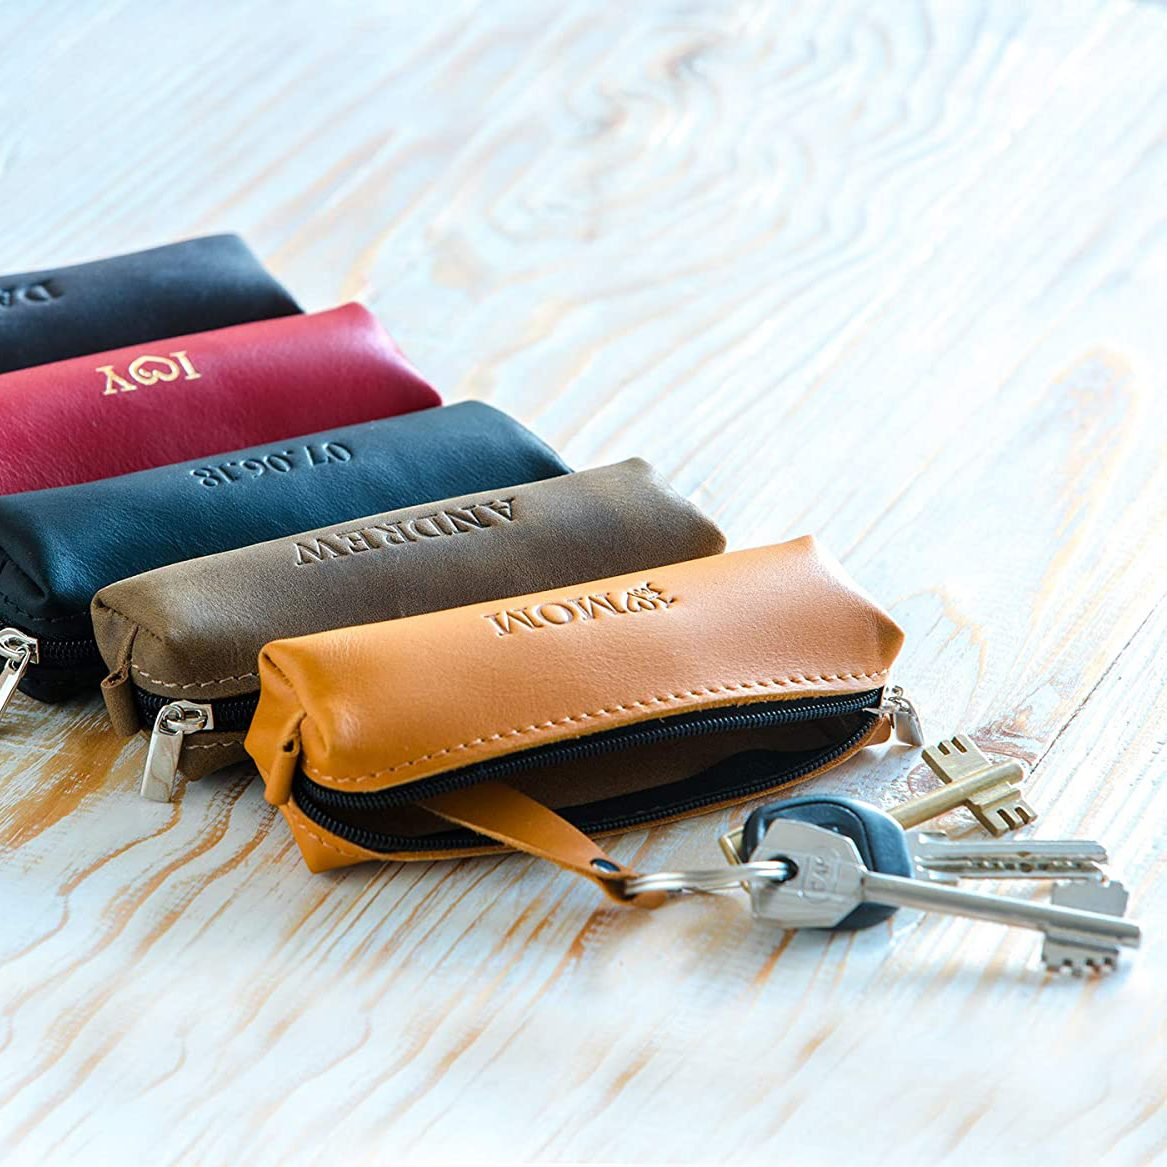 Leather key holder for father's day